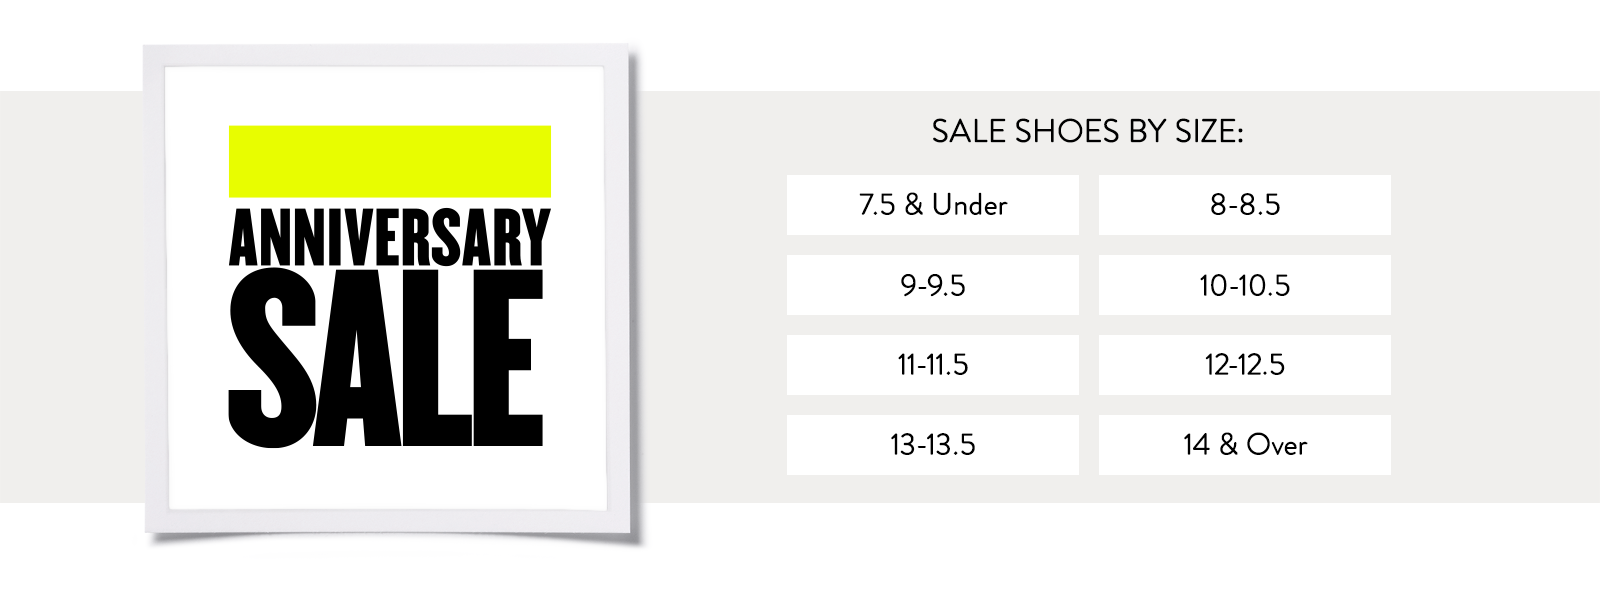 Anniversary Sale. Shop sale shoes by size.